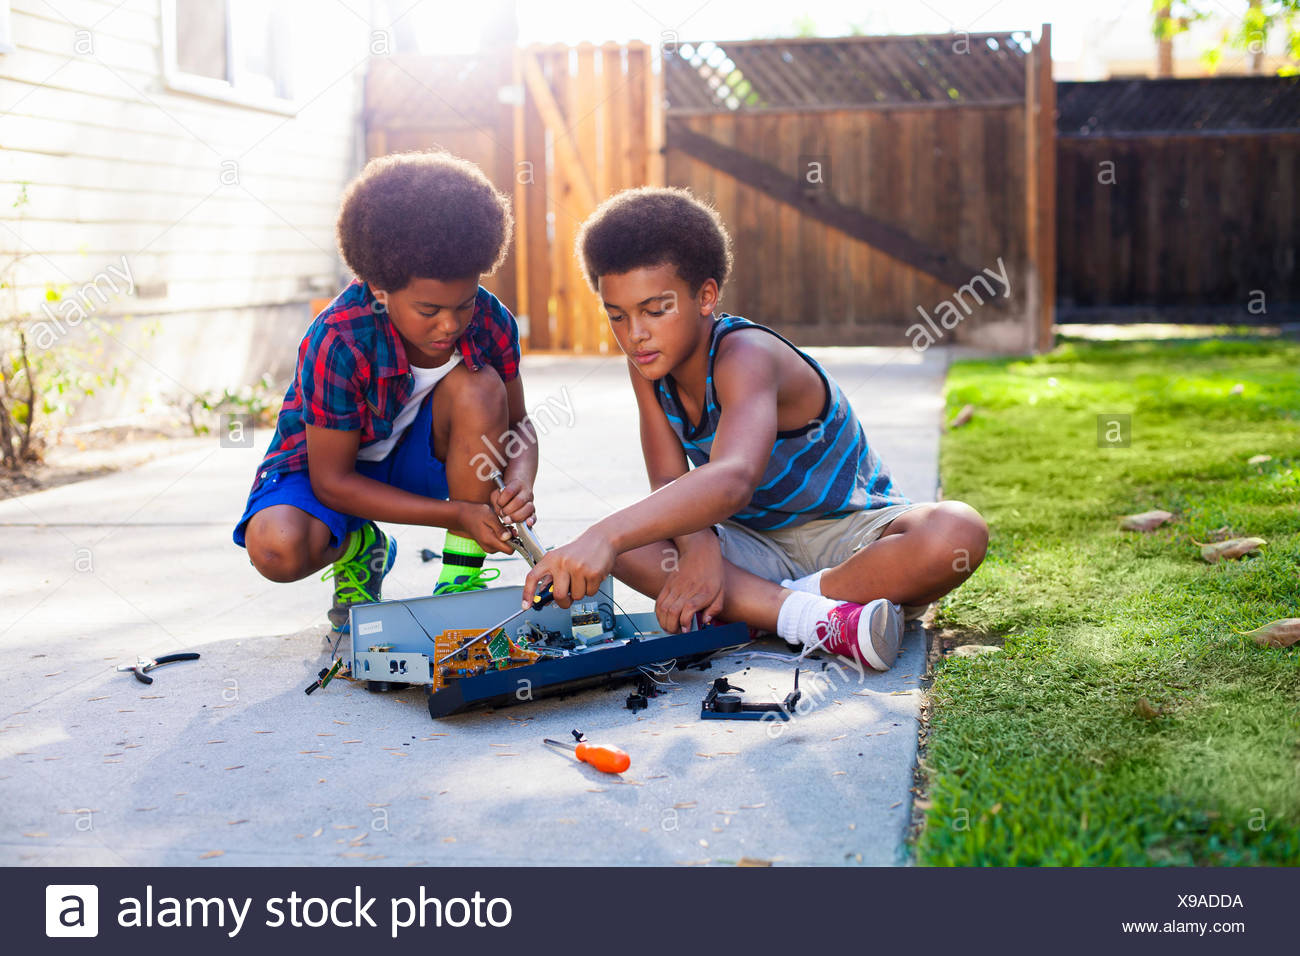 Two brothers dismantling electronic equipment in garden - Stock Image